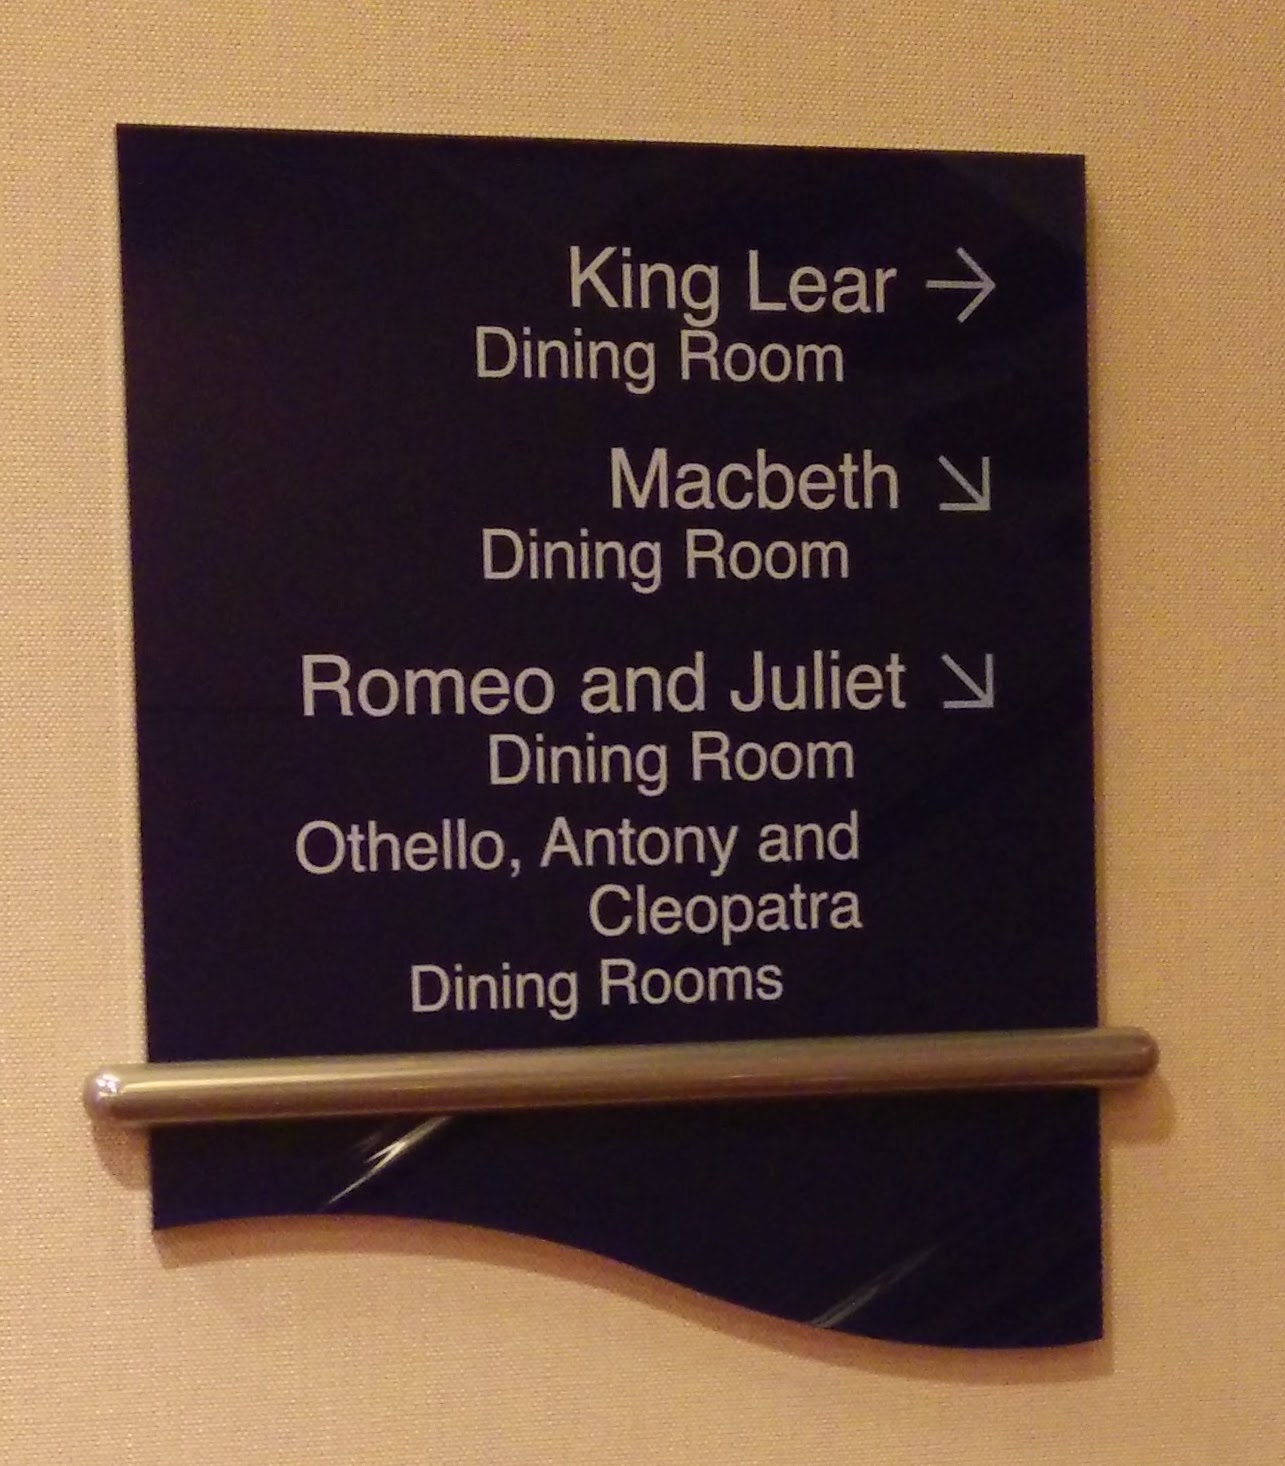 Royal Caribbean Indy - Dining Room signs